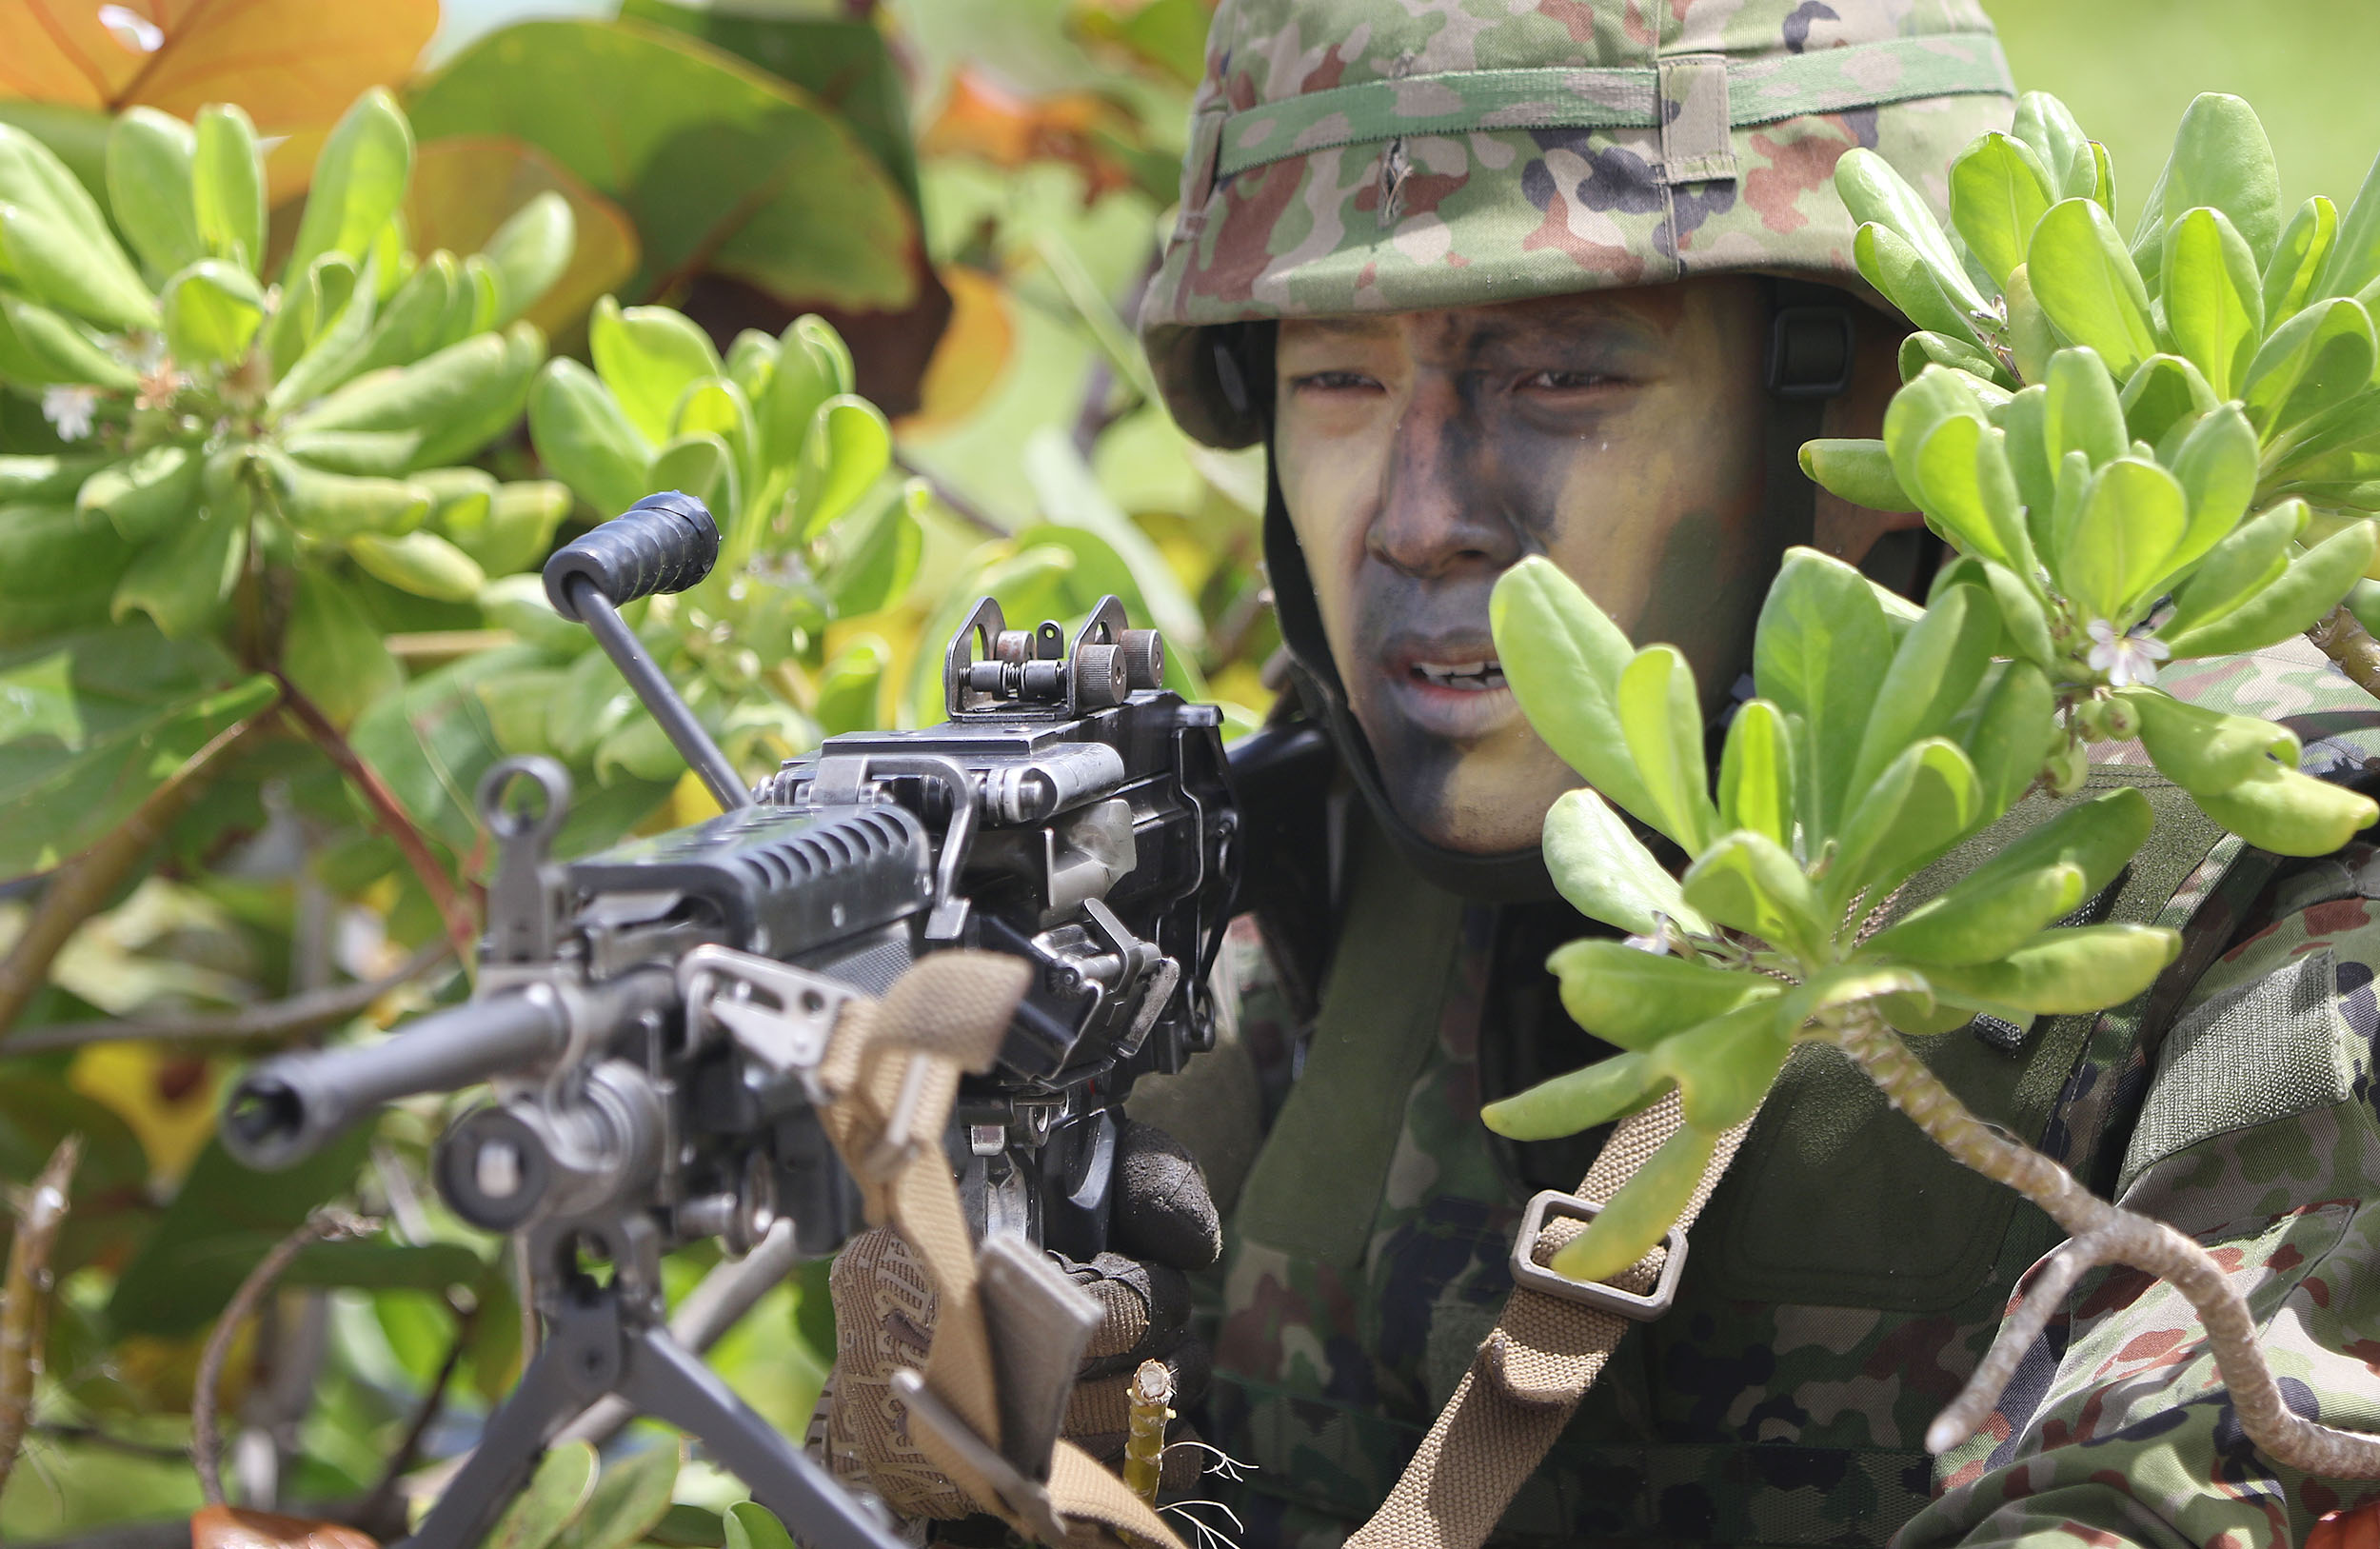 <p>A member of the Japan Ground Self-Defense Force held his positionon the beach.</p>